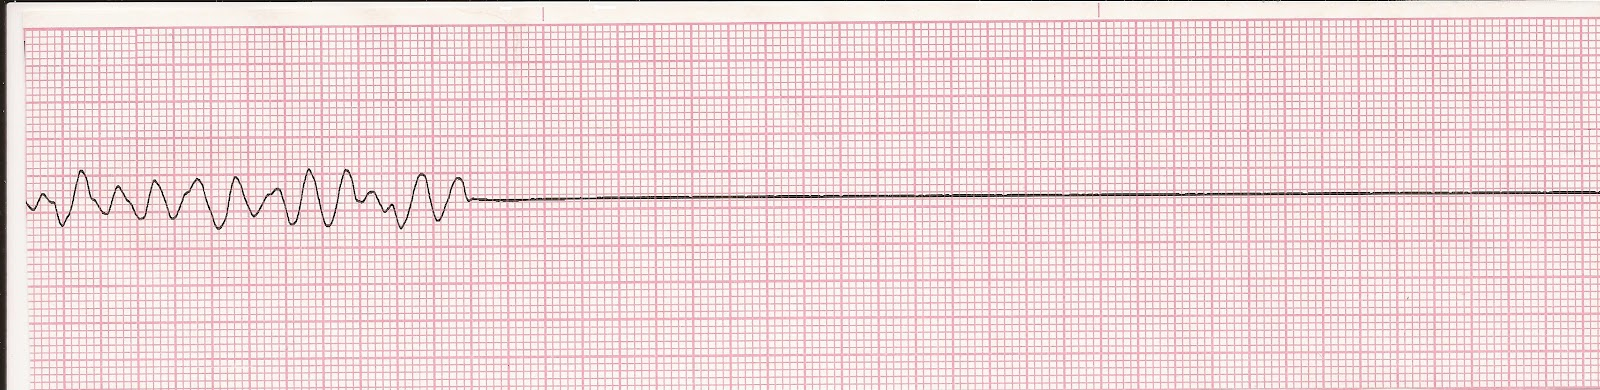 Float Nurse Ekg Rhythm Strip Quiz 5